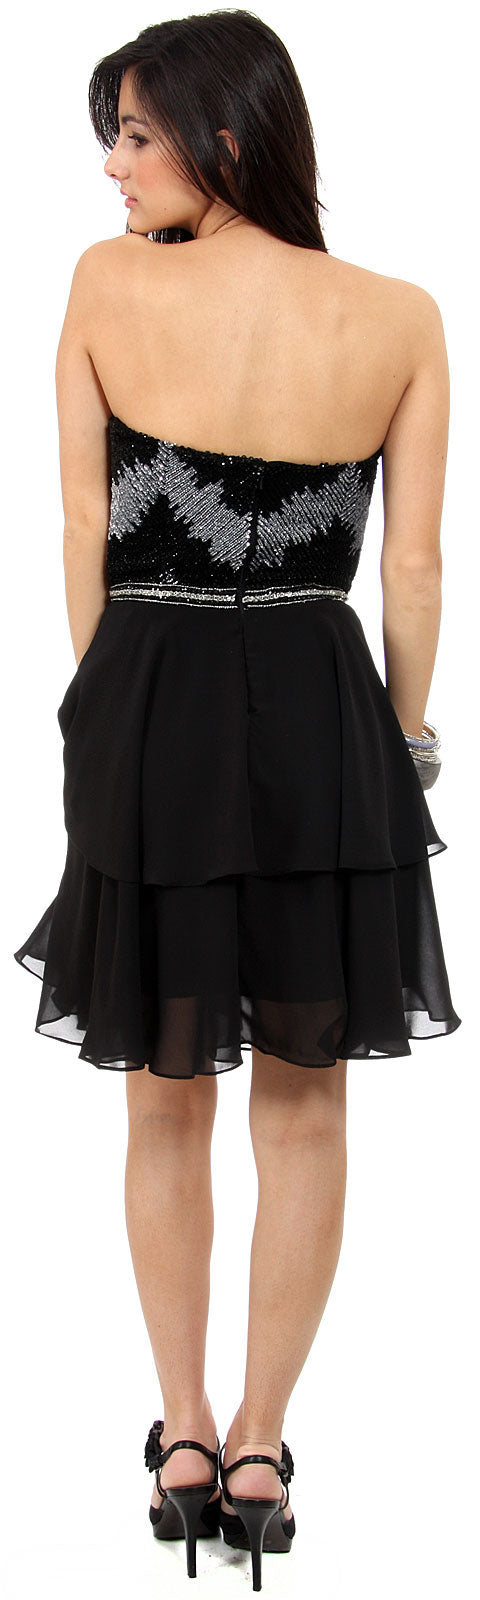 Back image of Strapless Ruffled Skirt Sequined Bust Short Prom Dress